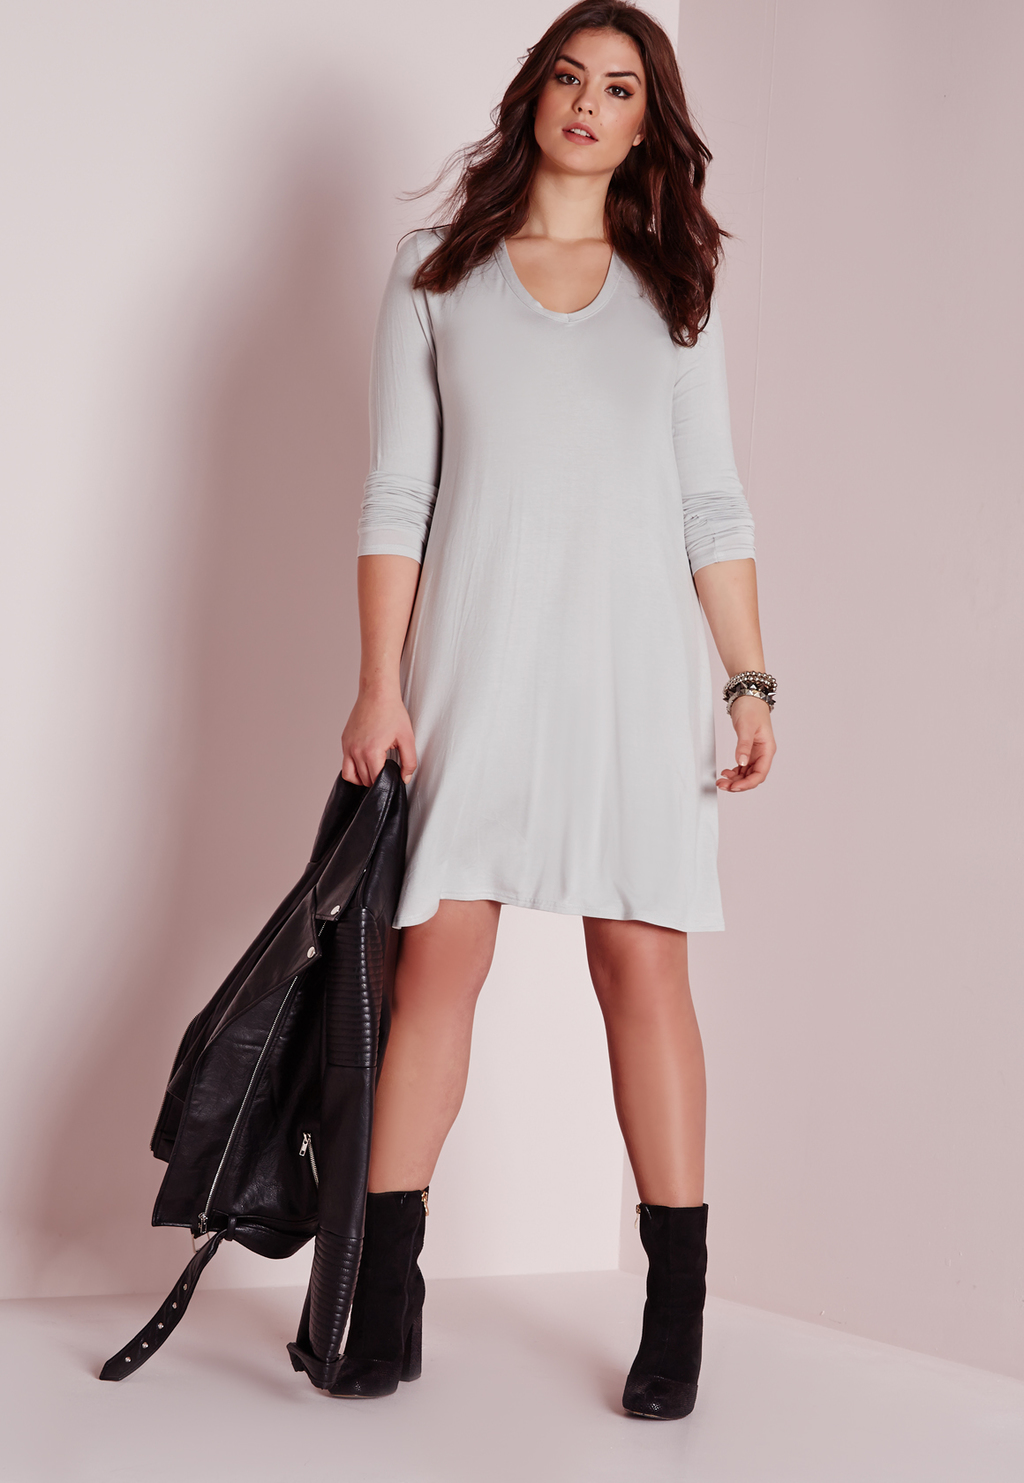 Plus Size V Neck Swing Dress Ice Grey, Grey - style: trapeze; neckline: v-neck; fit: loose; pattern: plain; predominant colour: light grey; occasions: casual, creative work; length: just above the knee; fibres: viscose/rayon - stretch; sleeve length: 3/4 length; sleeve style: standard; pattern type: fabric; texture group: jersey - stretchy/drapey; season: s/s 2016